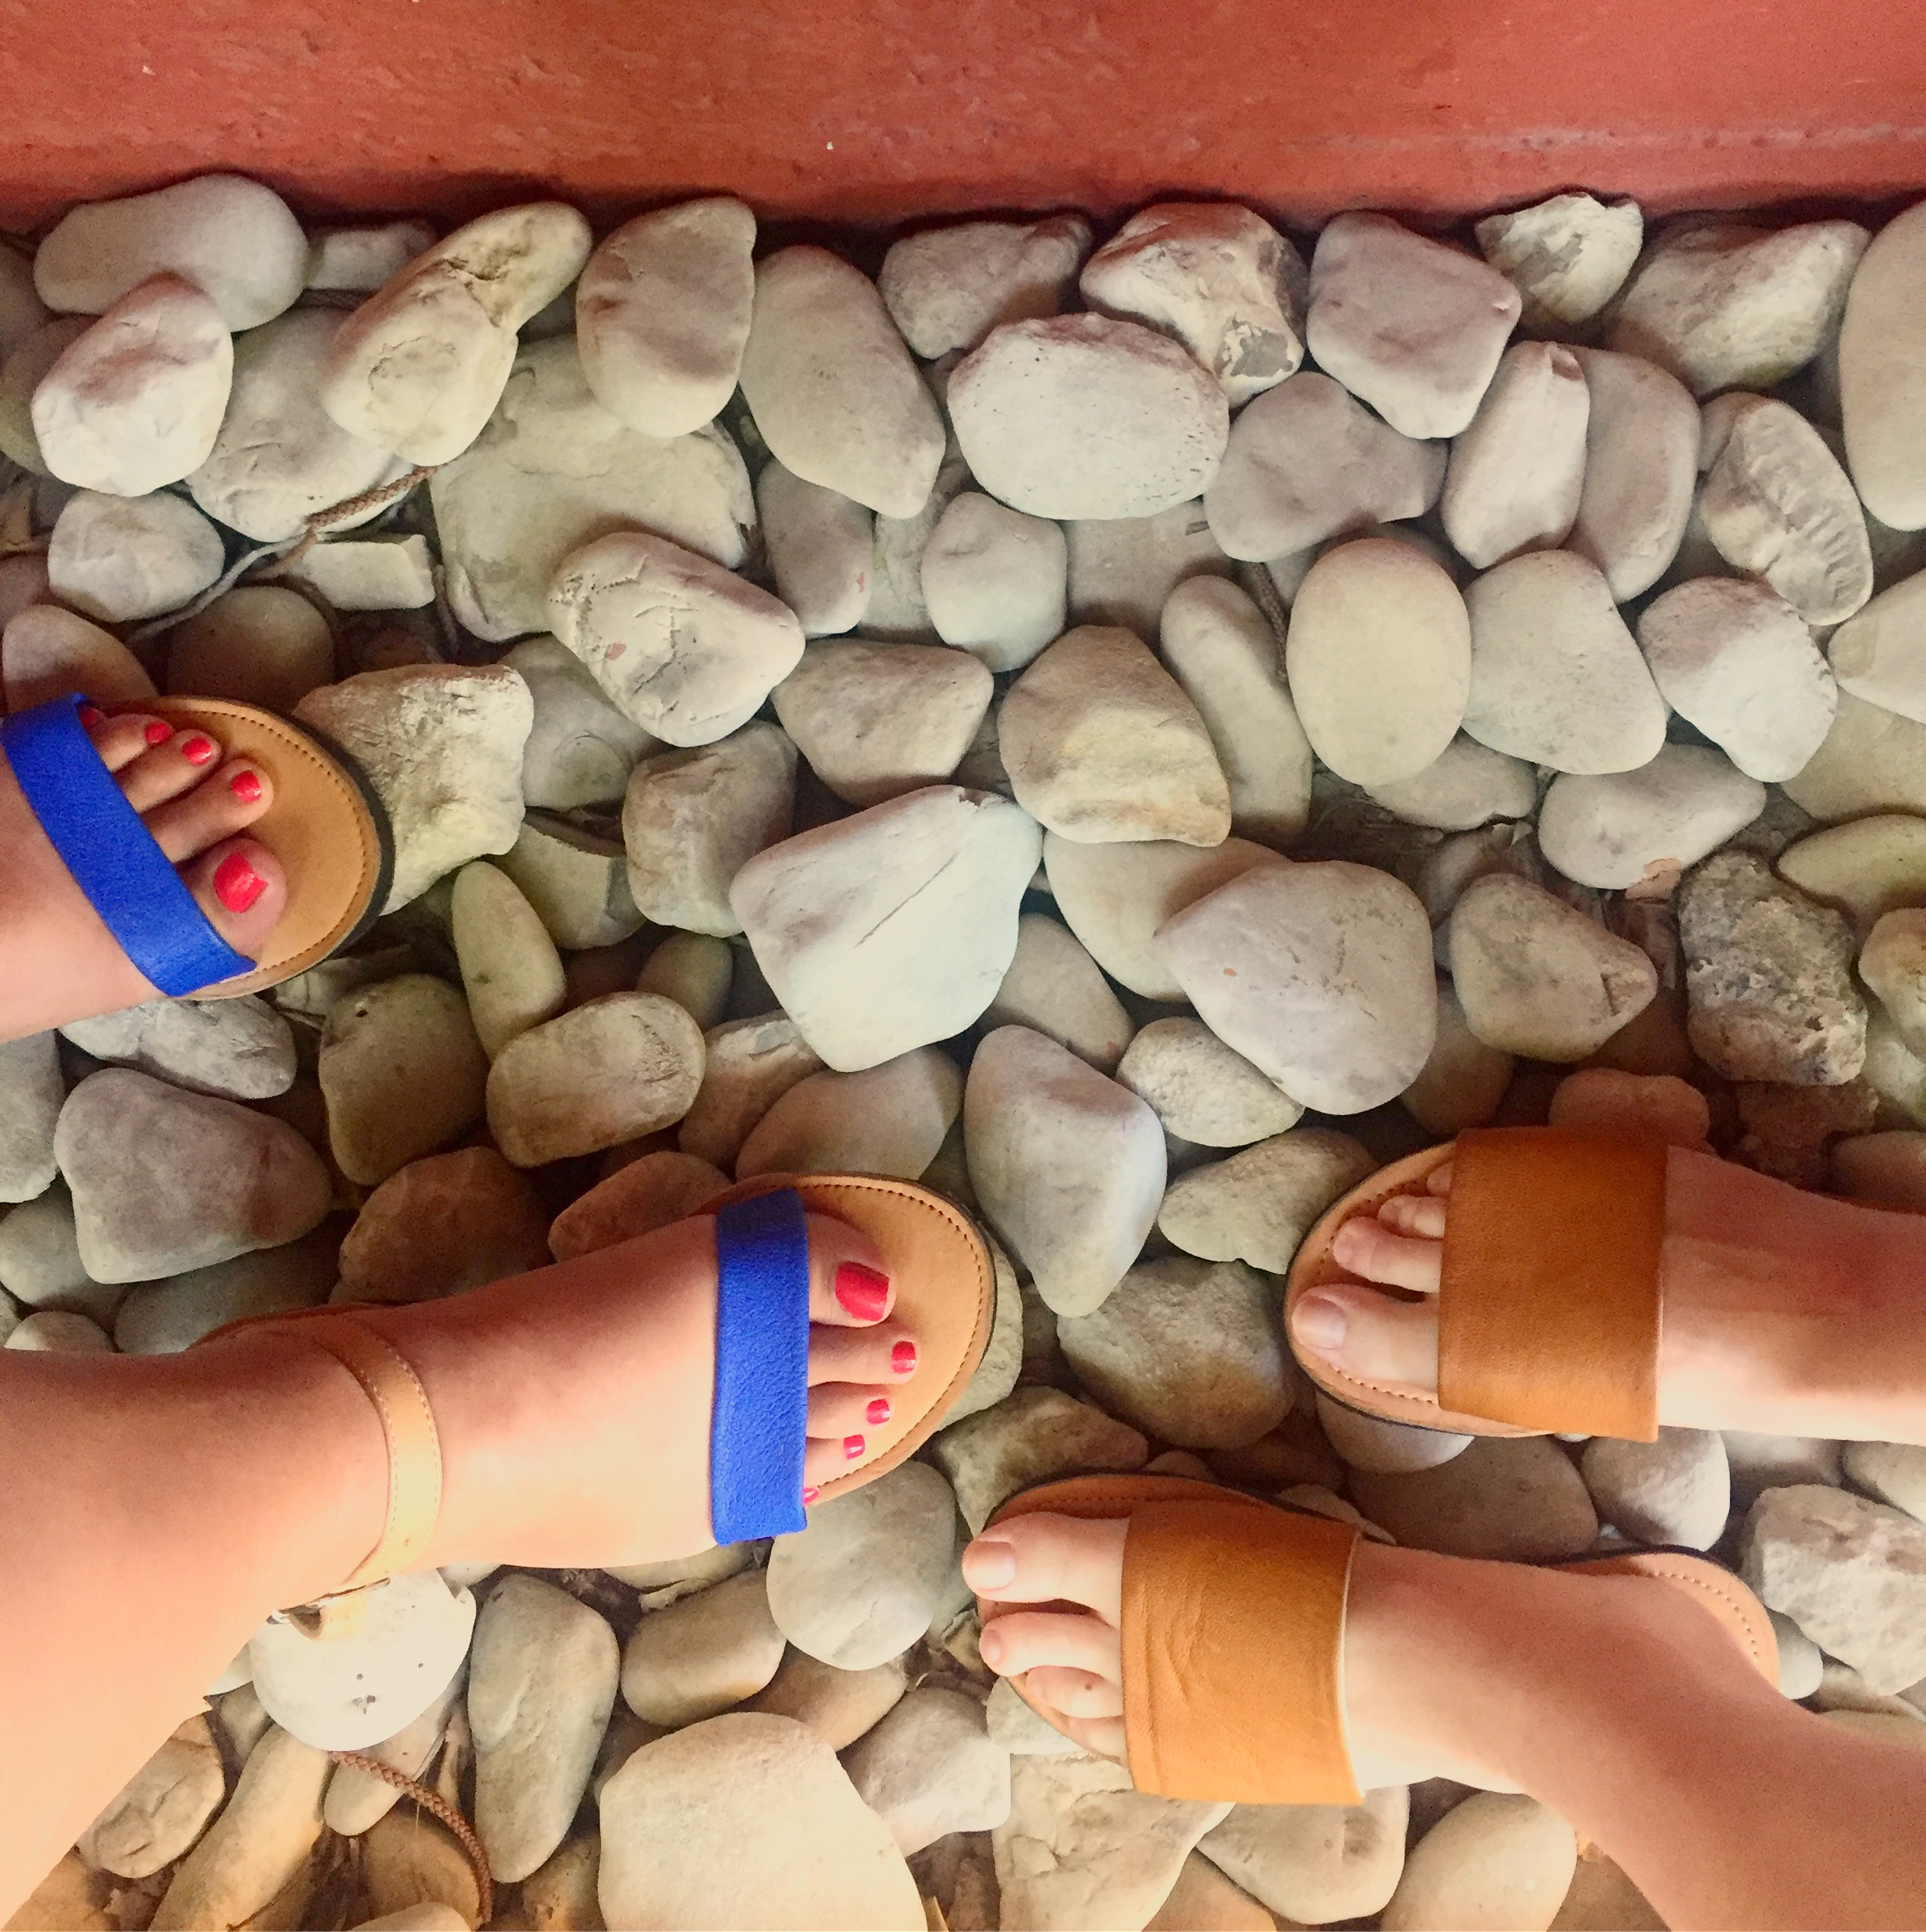 Sandals by Rebuild Globally